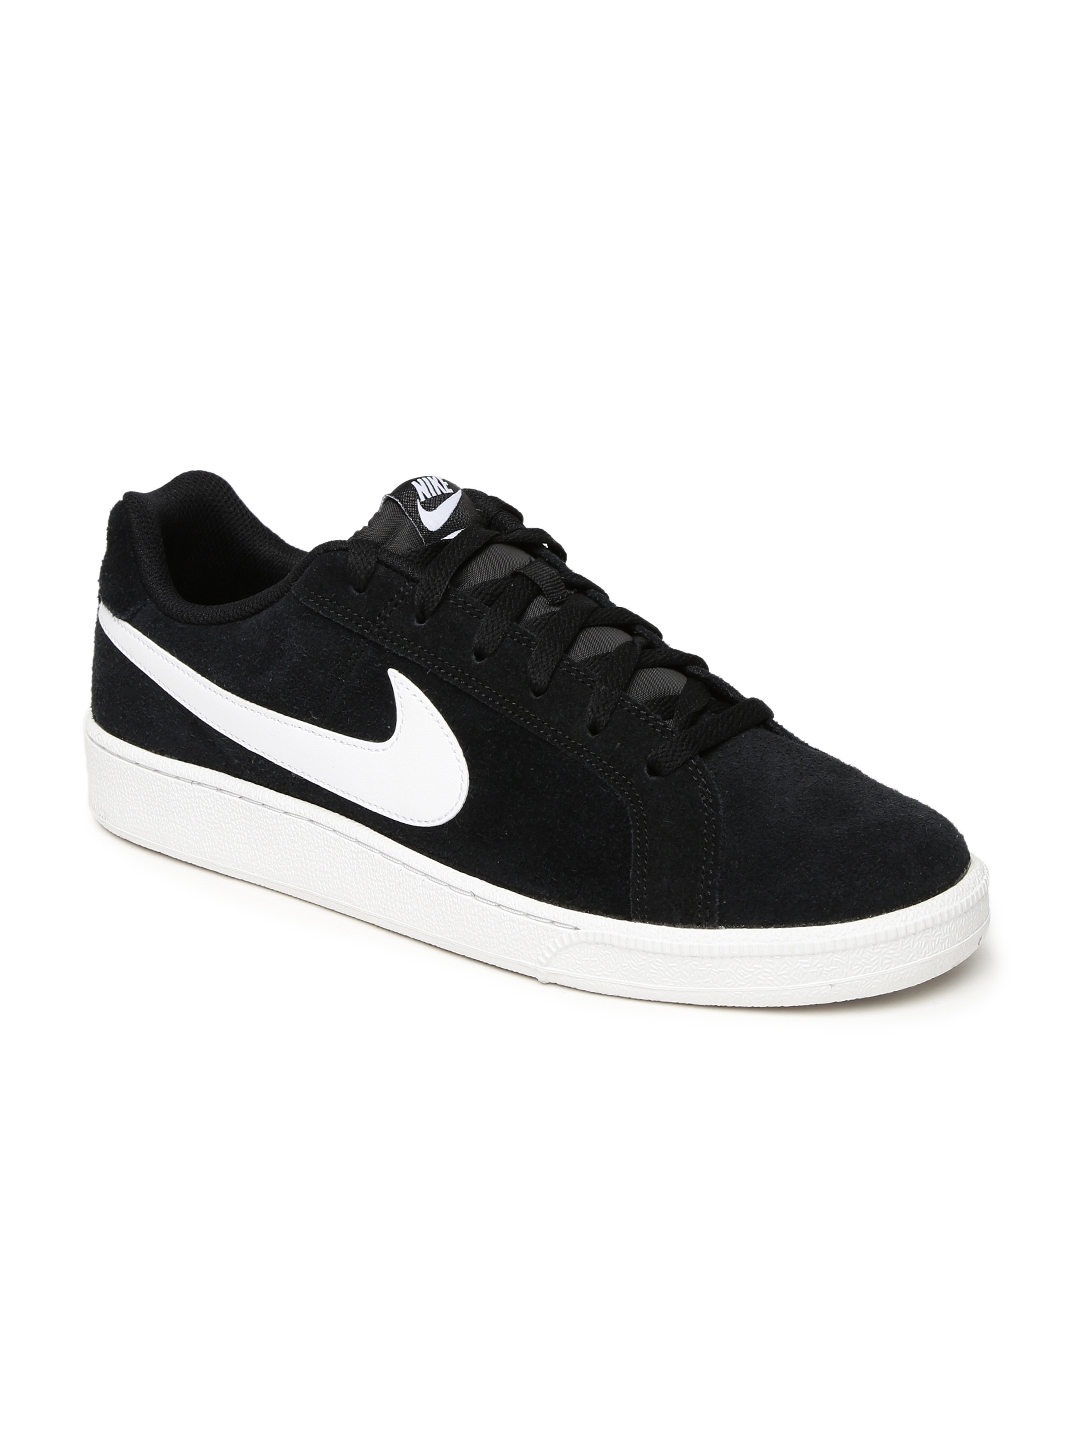 detailed look d87a1 cf0f0 Nike Men Black COURT ROYALE Suede Sneakers